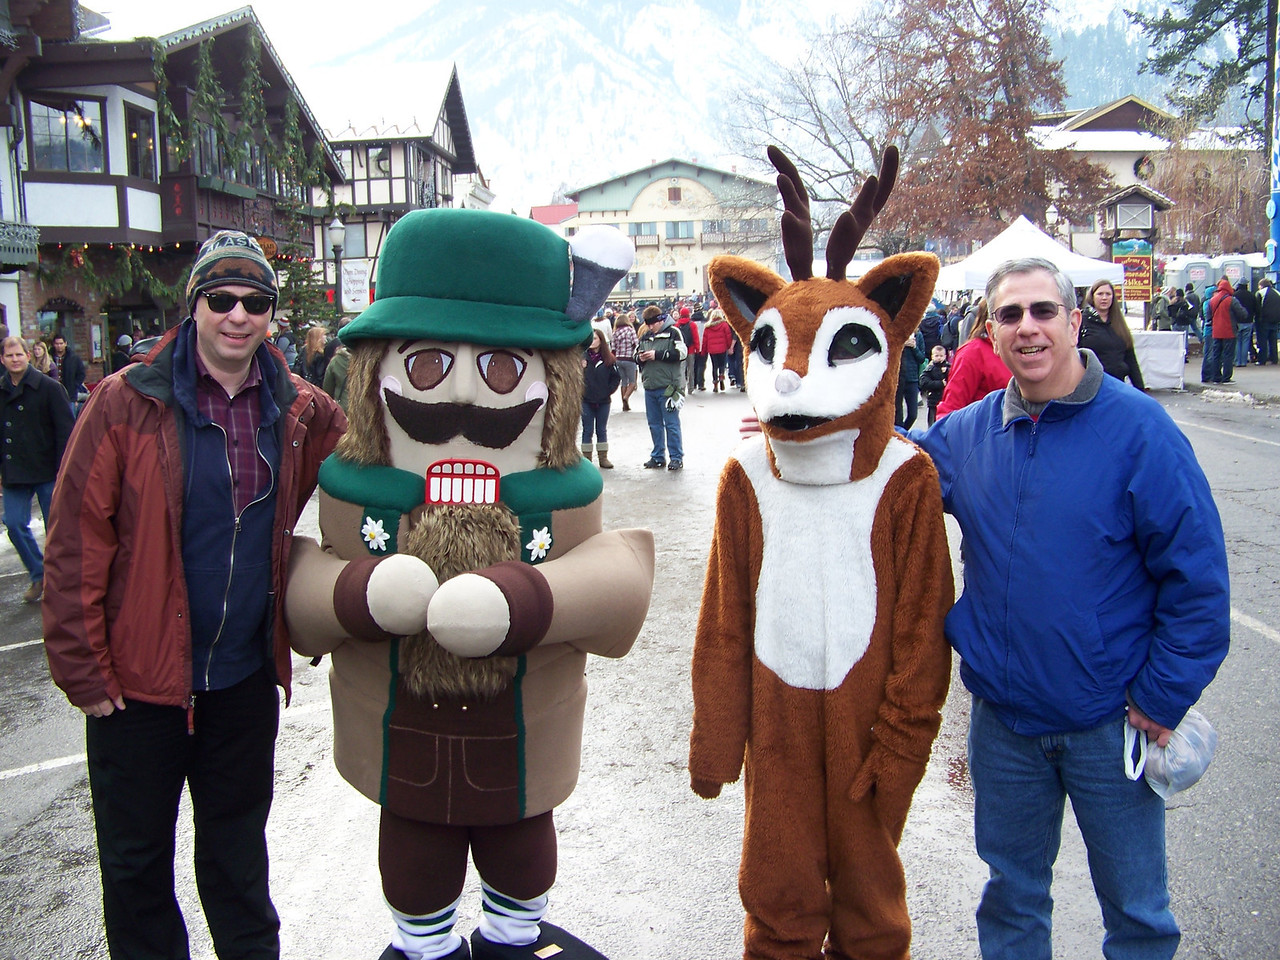 """Left to right are Pat, Woody Goomsba (the nutcracker mascot used in the town's advertising), Rudolph the Red-Nosed Reindeer, and Dave. [Leavenworth, WA - December 2013 - <b><a target=""""_new"""" href=""""http://youtu.be/NqCqDCOY_tc"""">Watch my video here</a></b>]"""